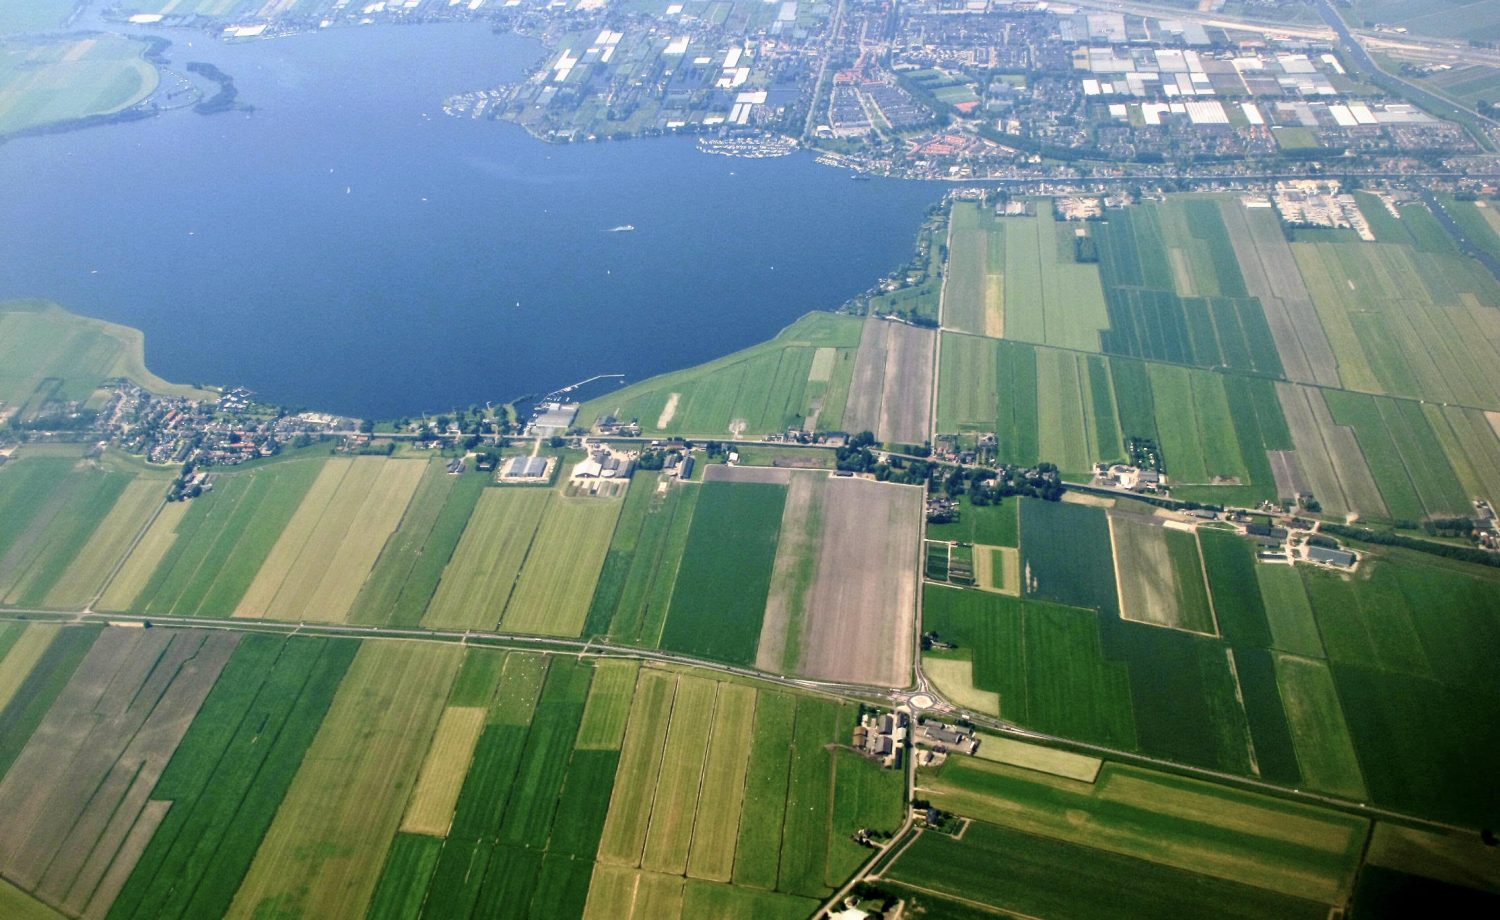 holland-fields-aerial-view-europe-photo